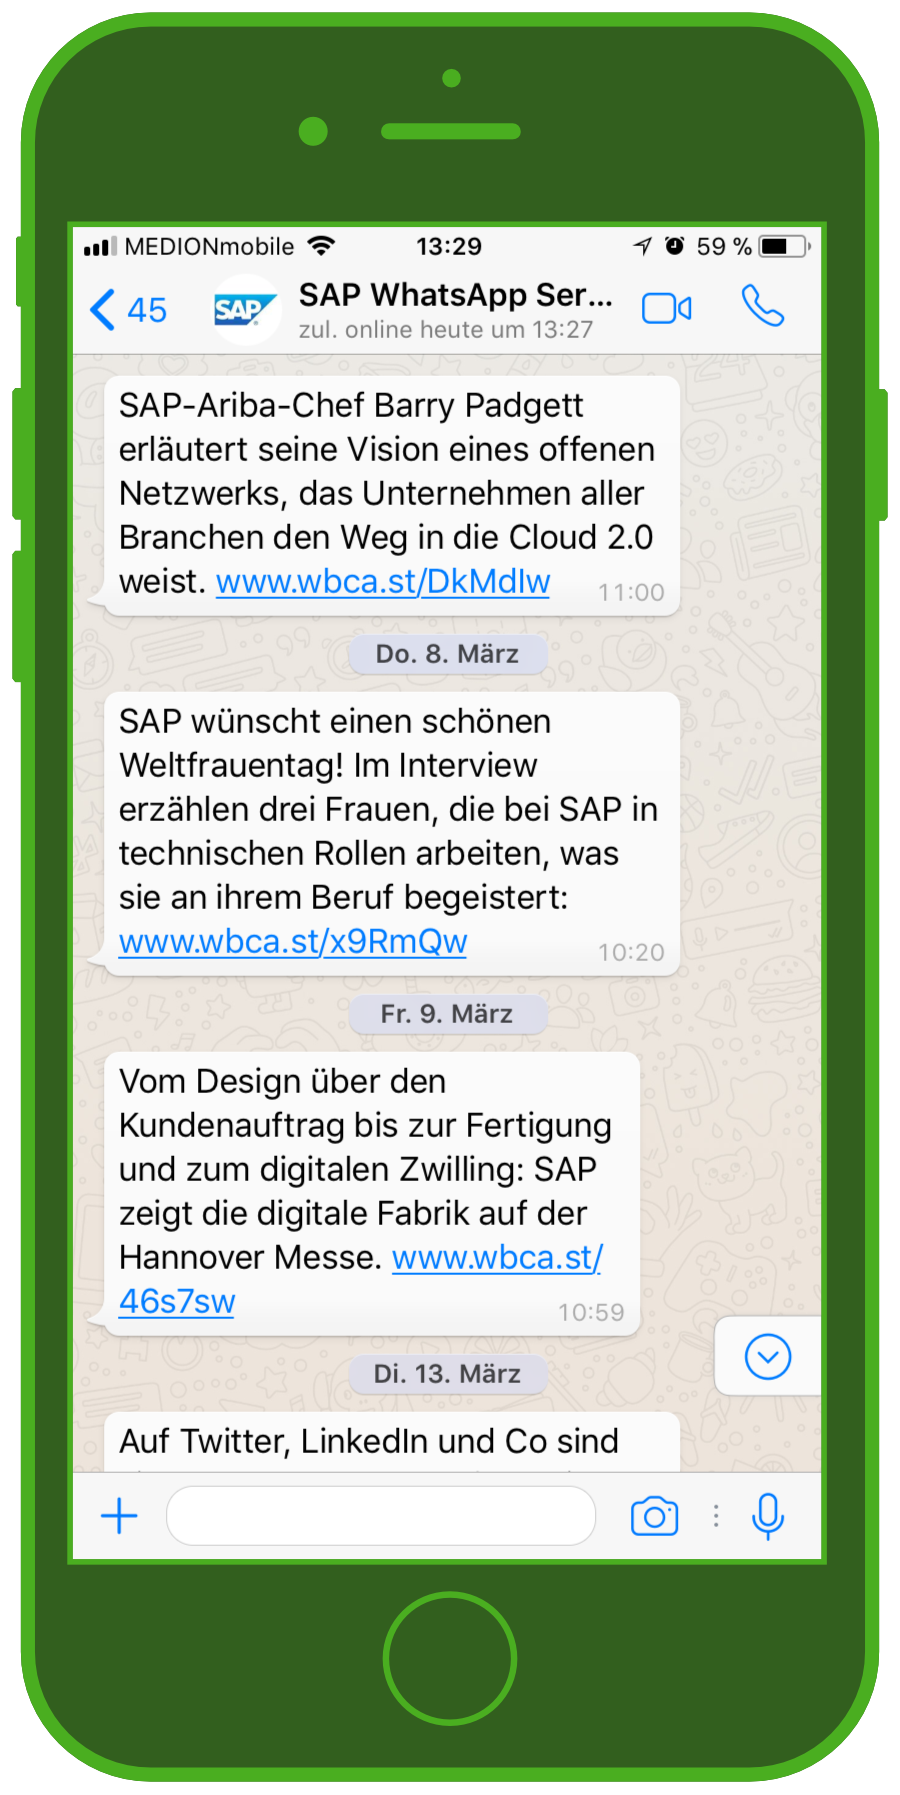 whatsapp-b2b-kommunikation-sap